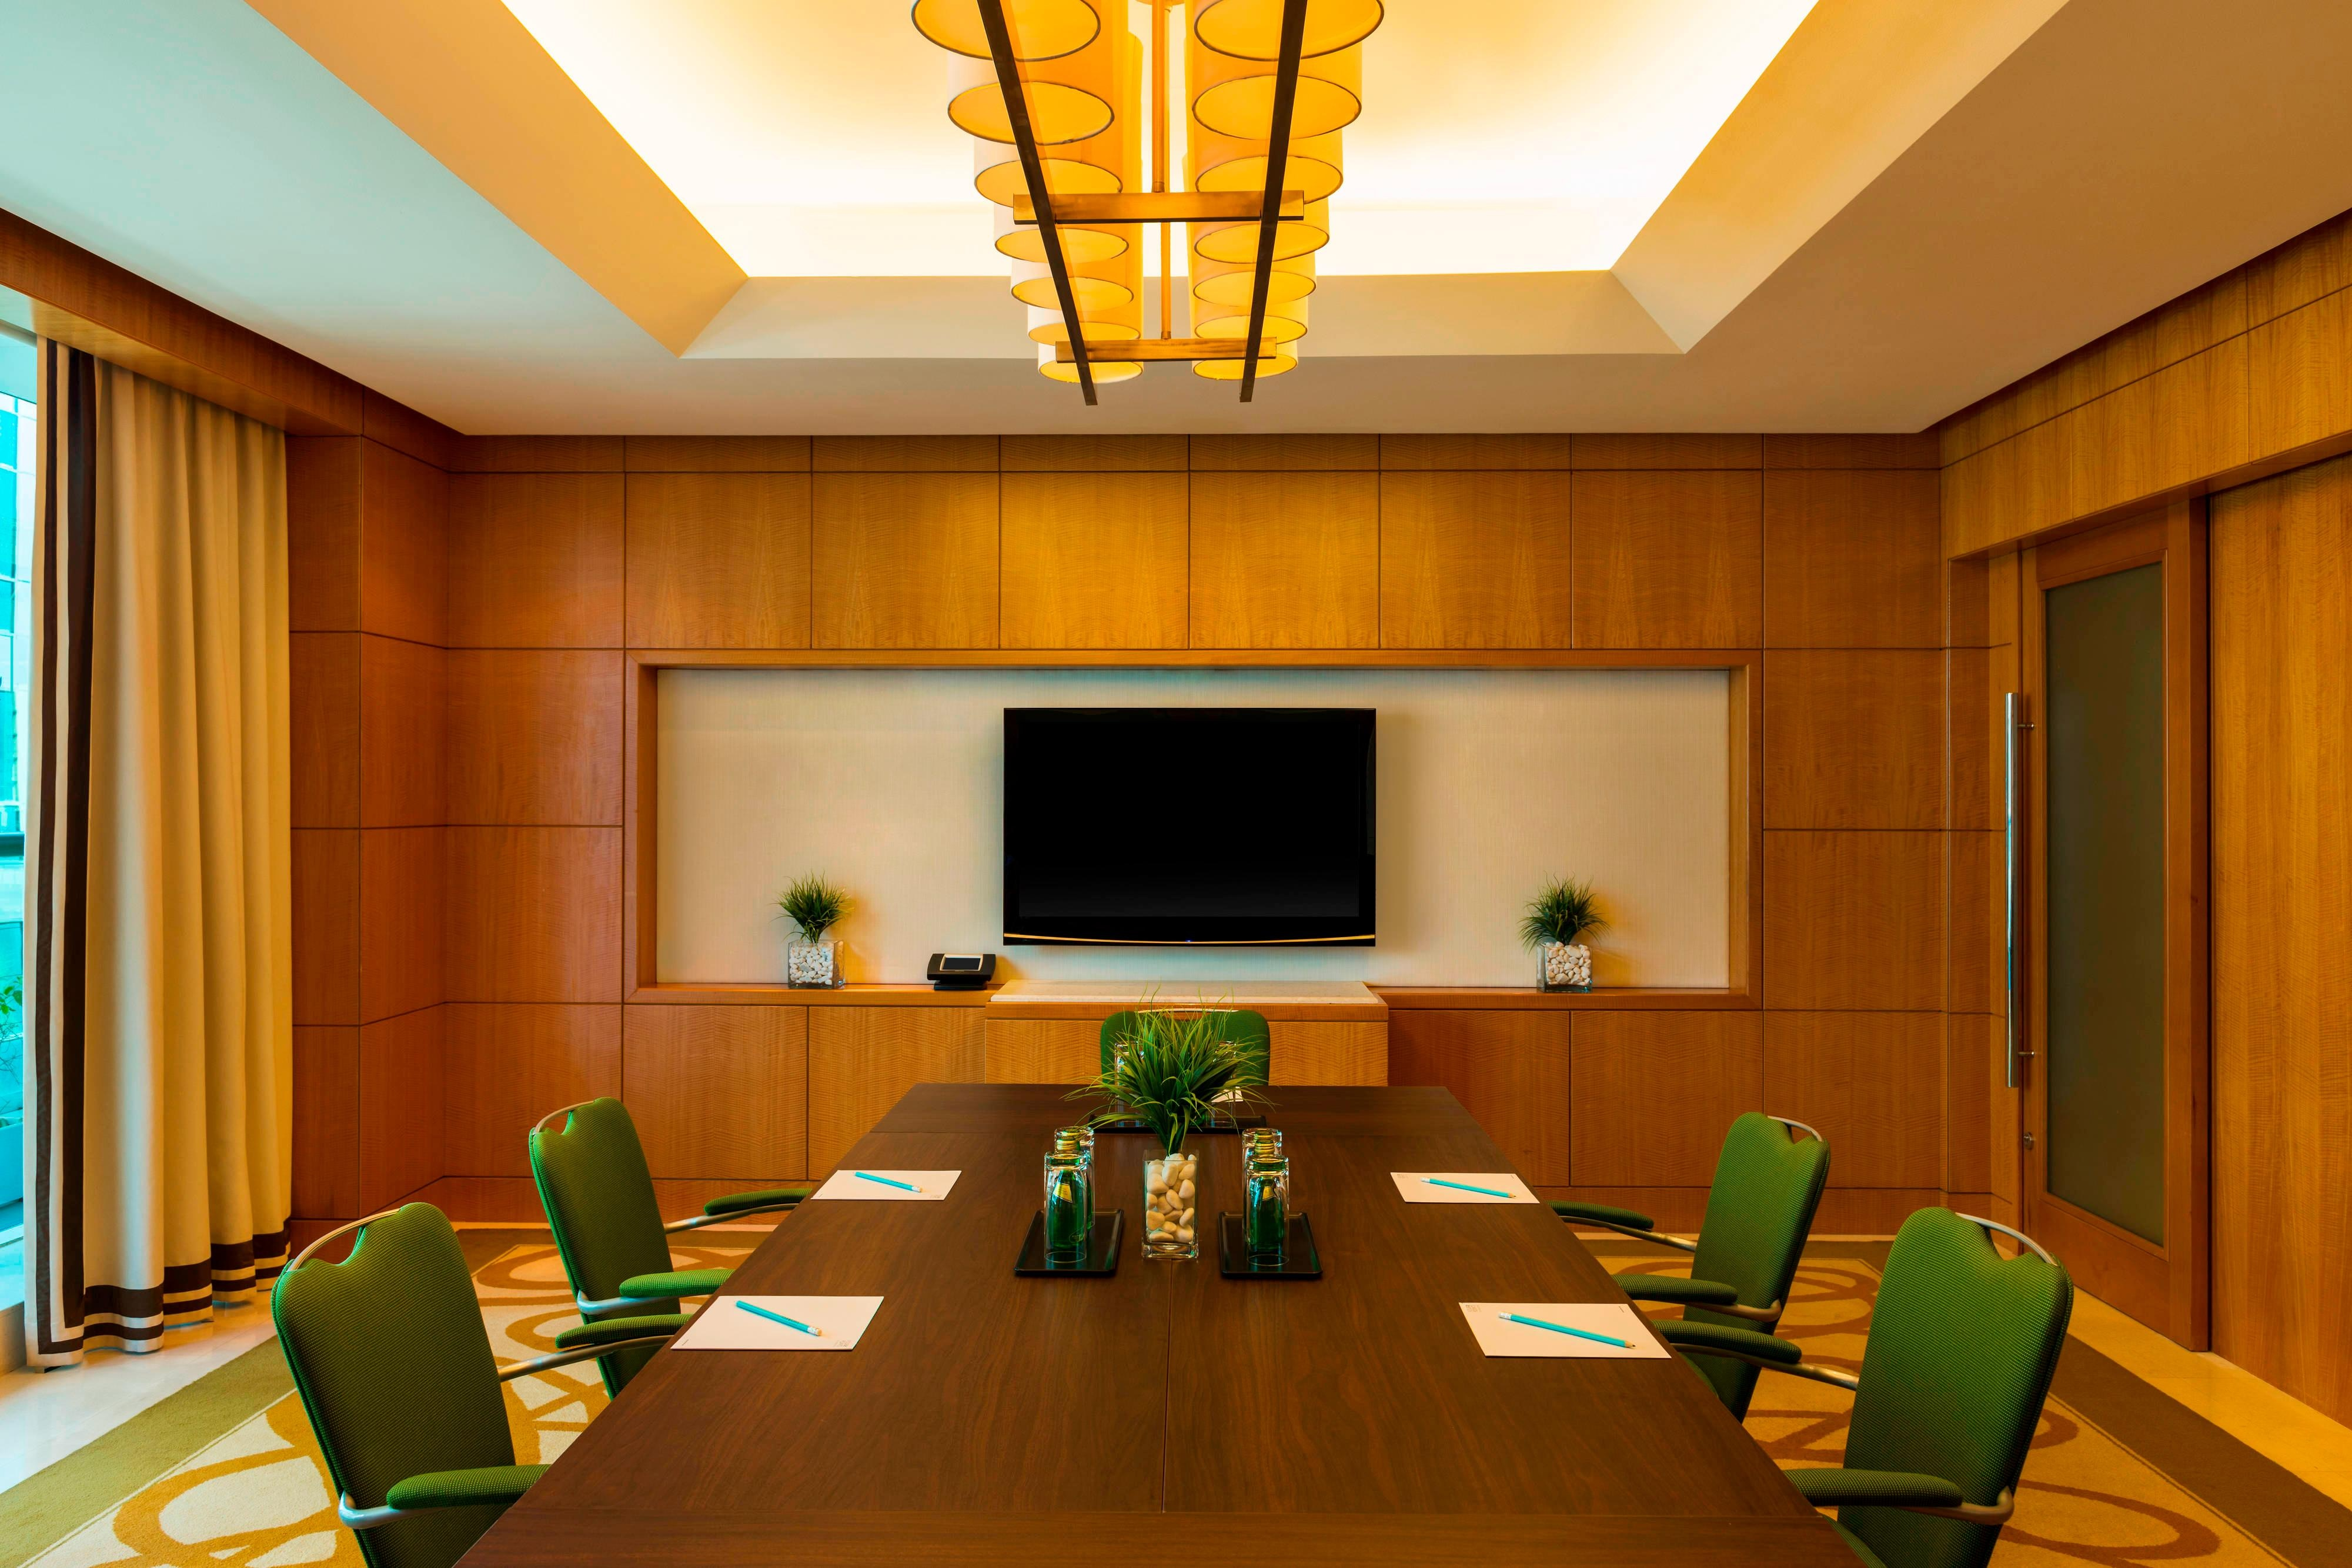 Meeting Point 2 - Boardroom Setup